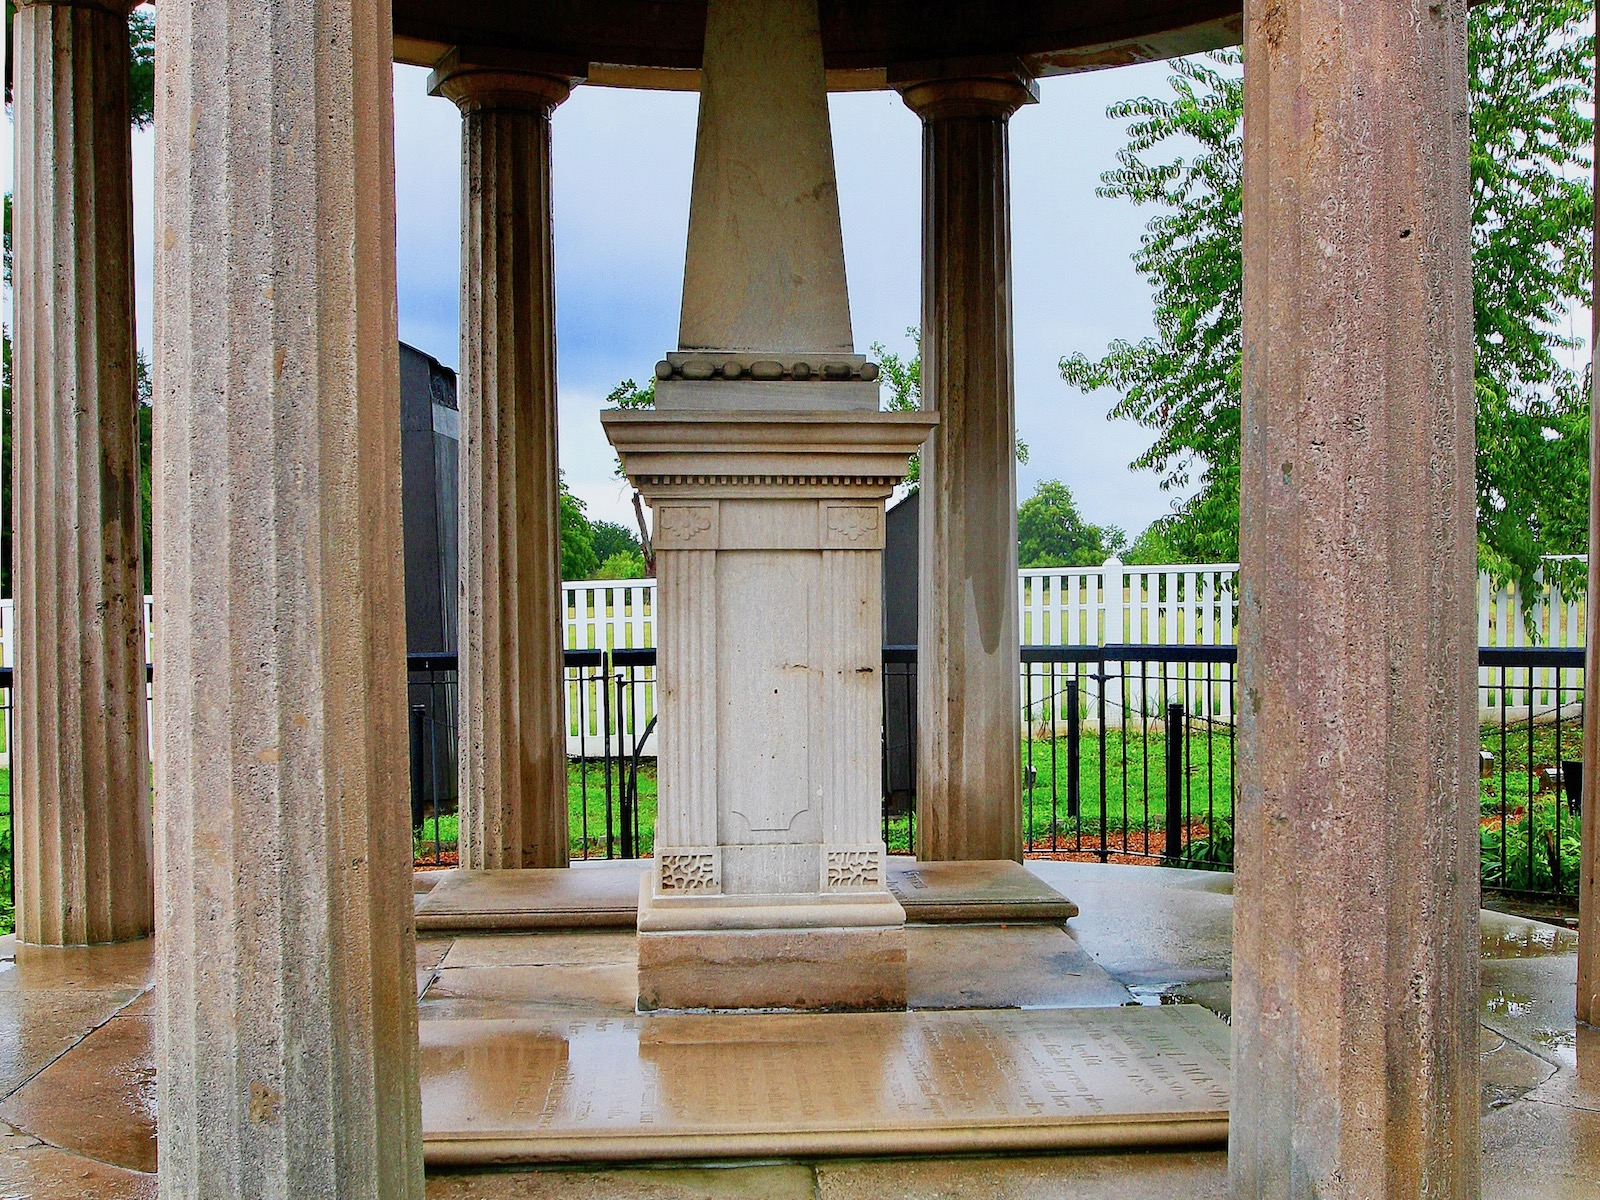 Stacy Pratt: Visiting the gravesite of Andrew Jackson in Tennessee